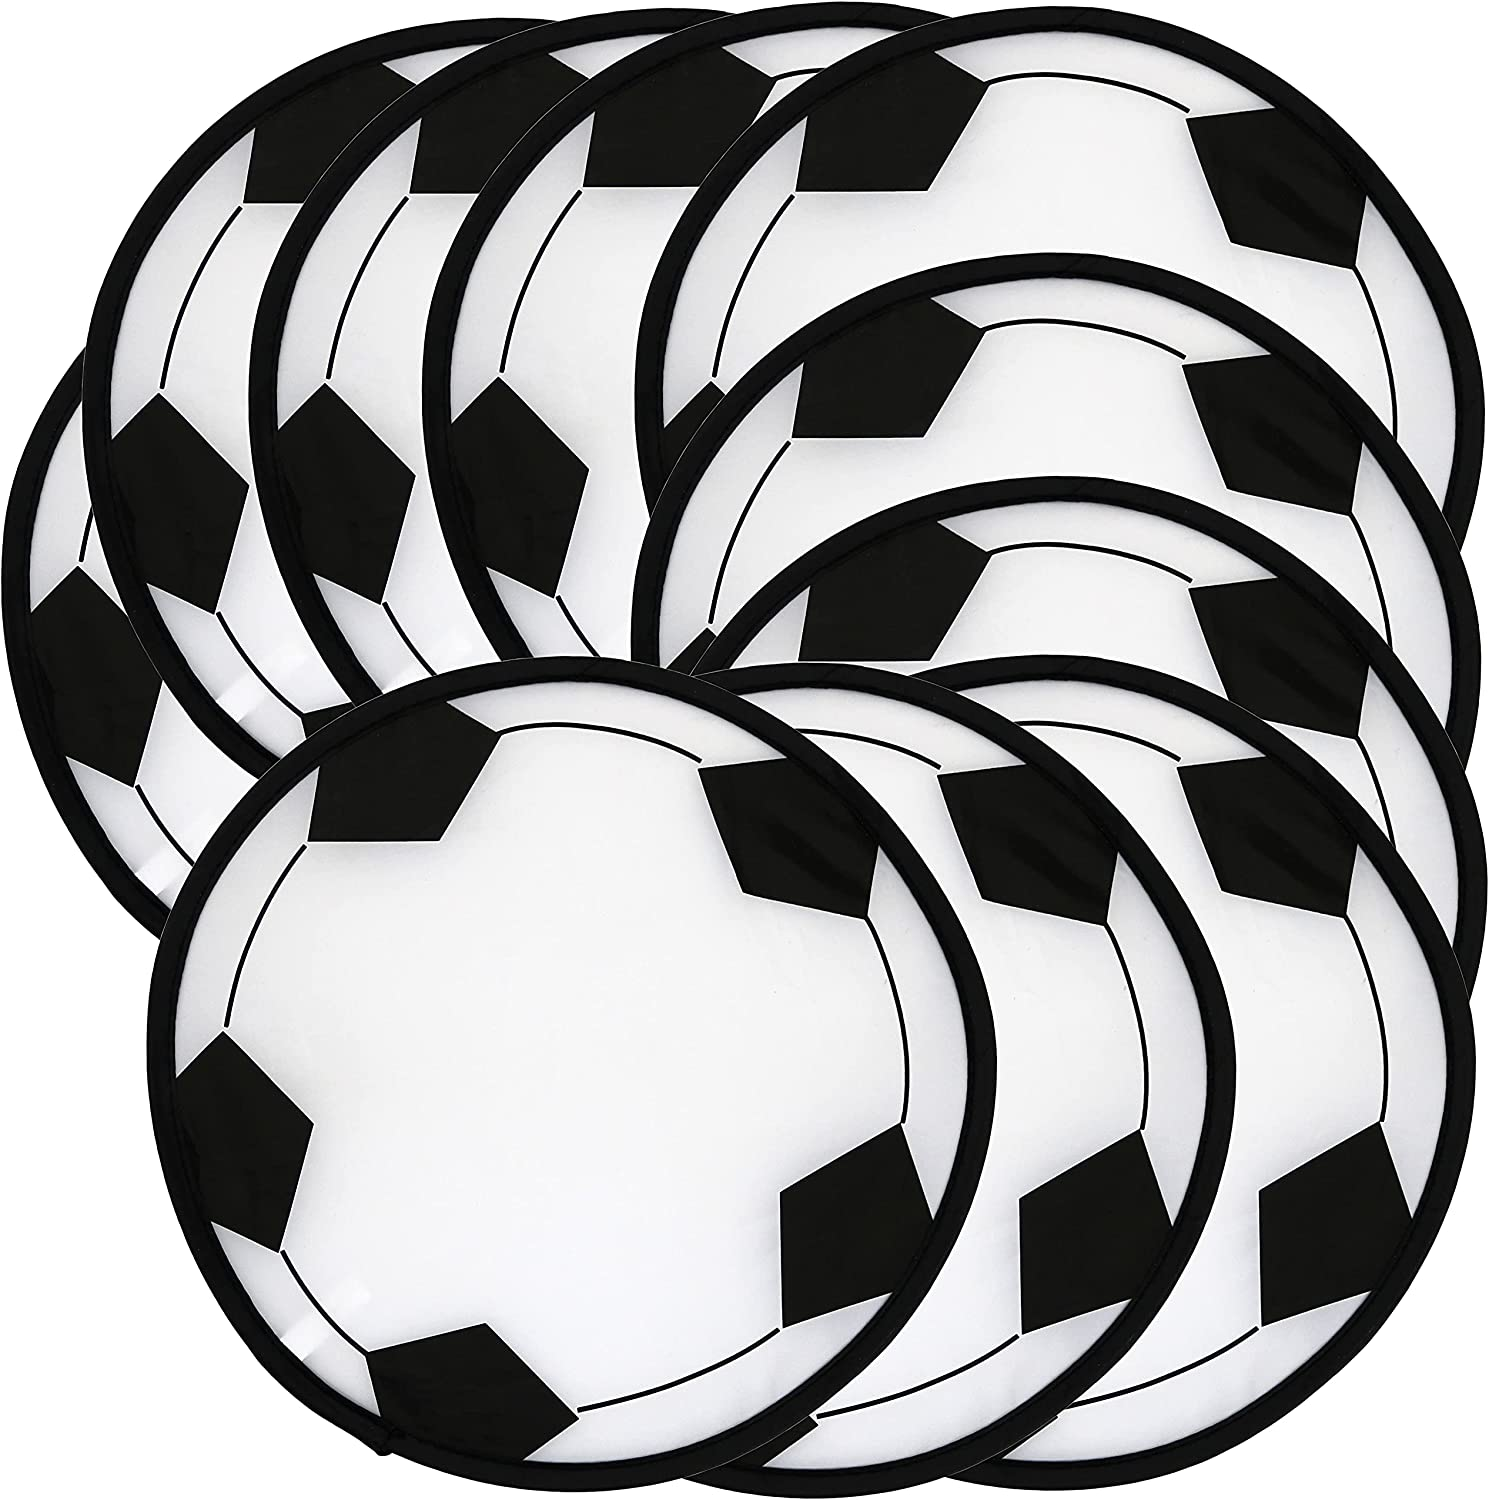 Iconikal Foldable Online limited product Flying Pocket Futbol Soccer Disk Safety and trust 10.5-inch